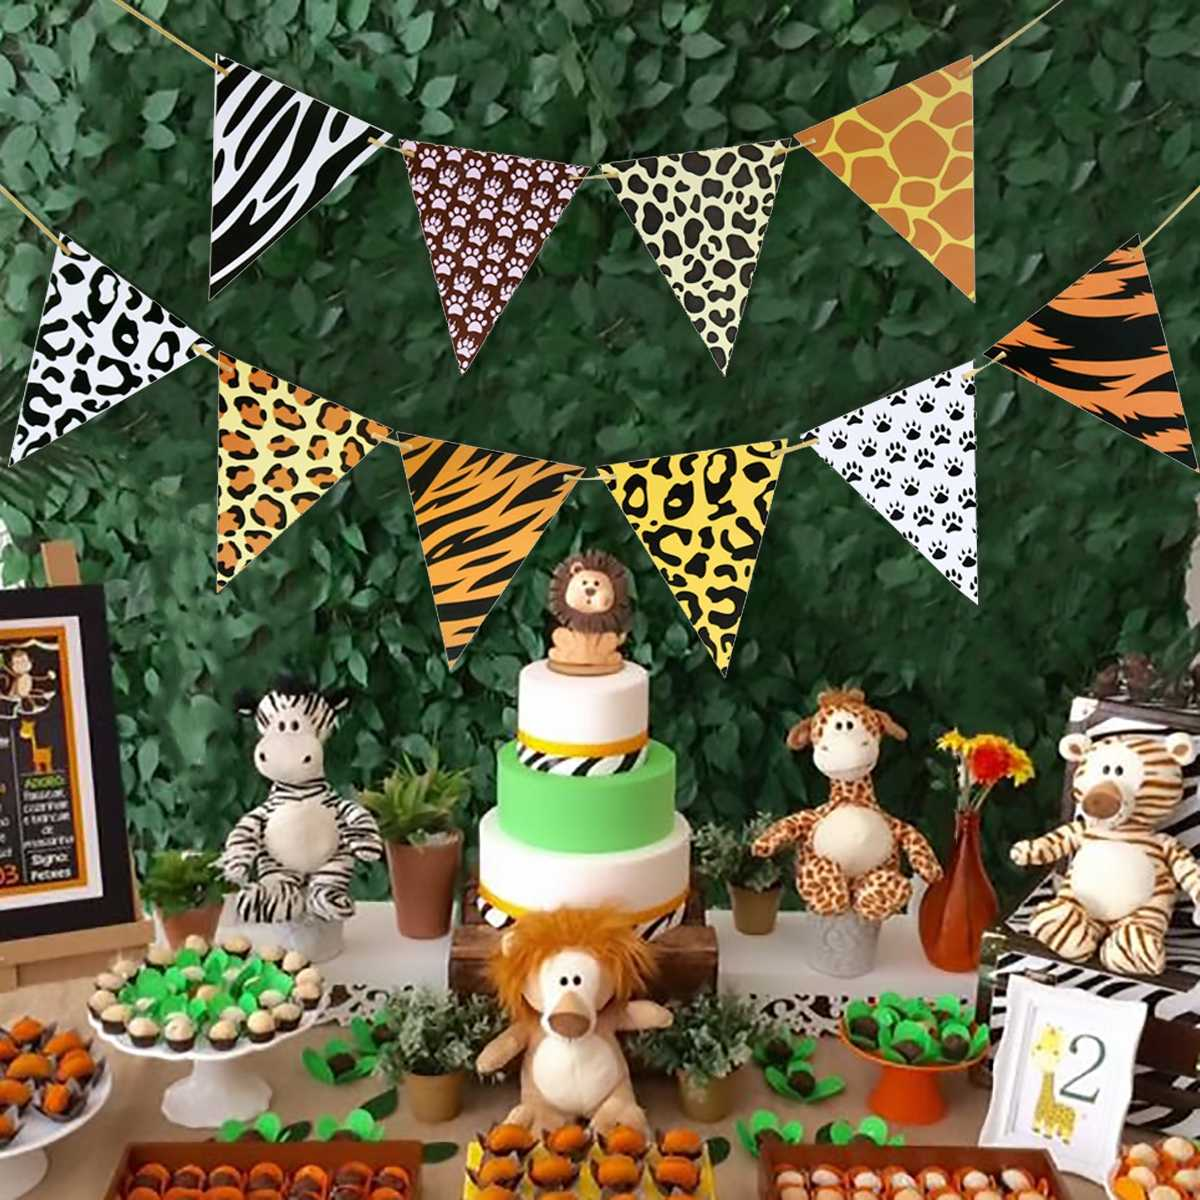 Fengrise Disposable Tableware Jungle Party Birthday Party Decor Kids Jungle Safari Party Animals Theme Baby Shower Supplies